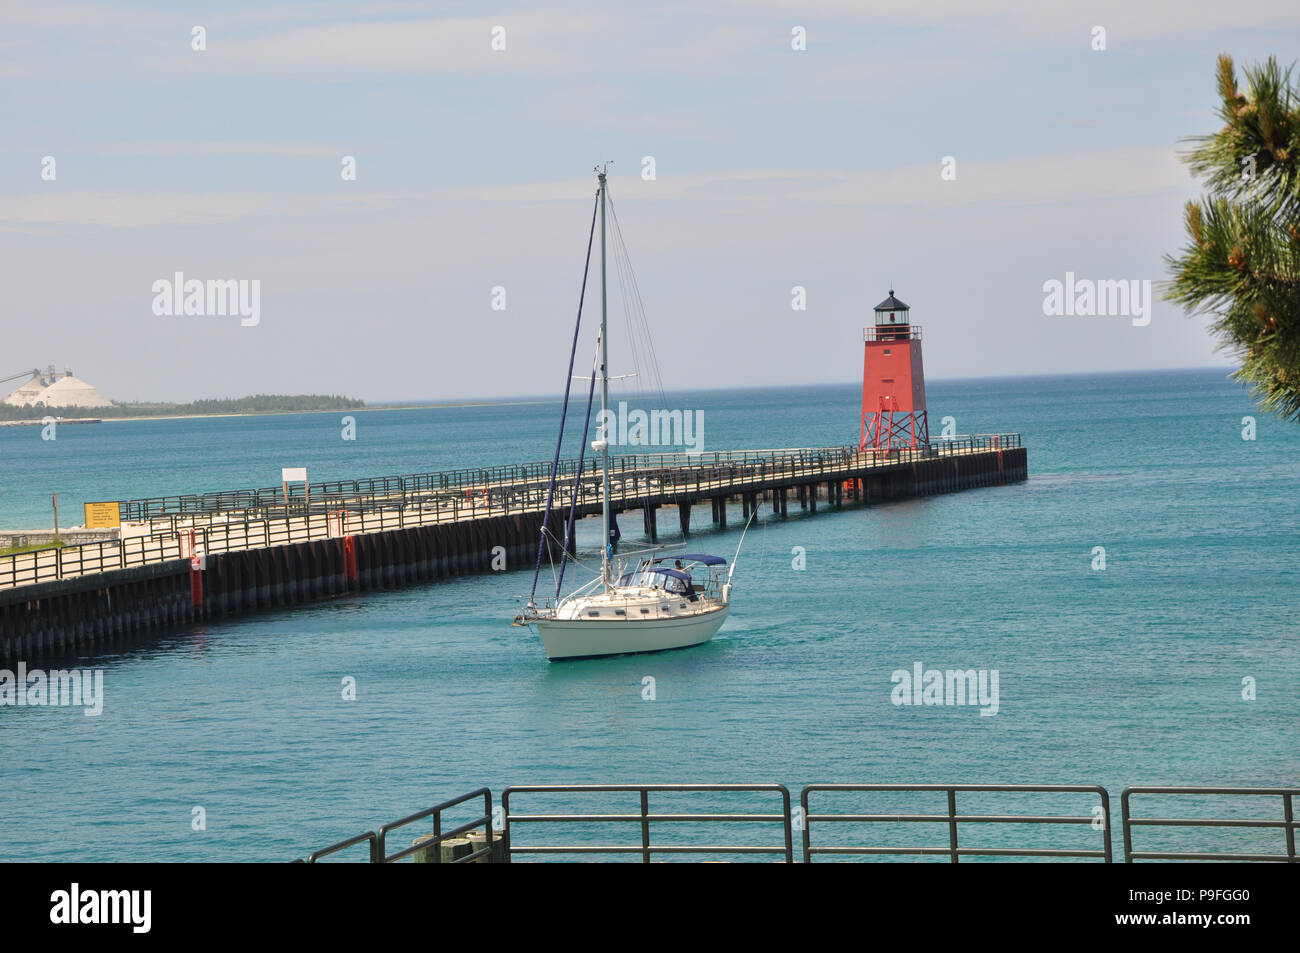 Charlevoix South Pier Lighthouse in Charlevoix Michigan at the Island Lake Outlet (Pine River) channel to Lake Michigan. - Stock Image